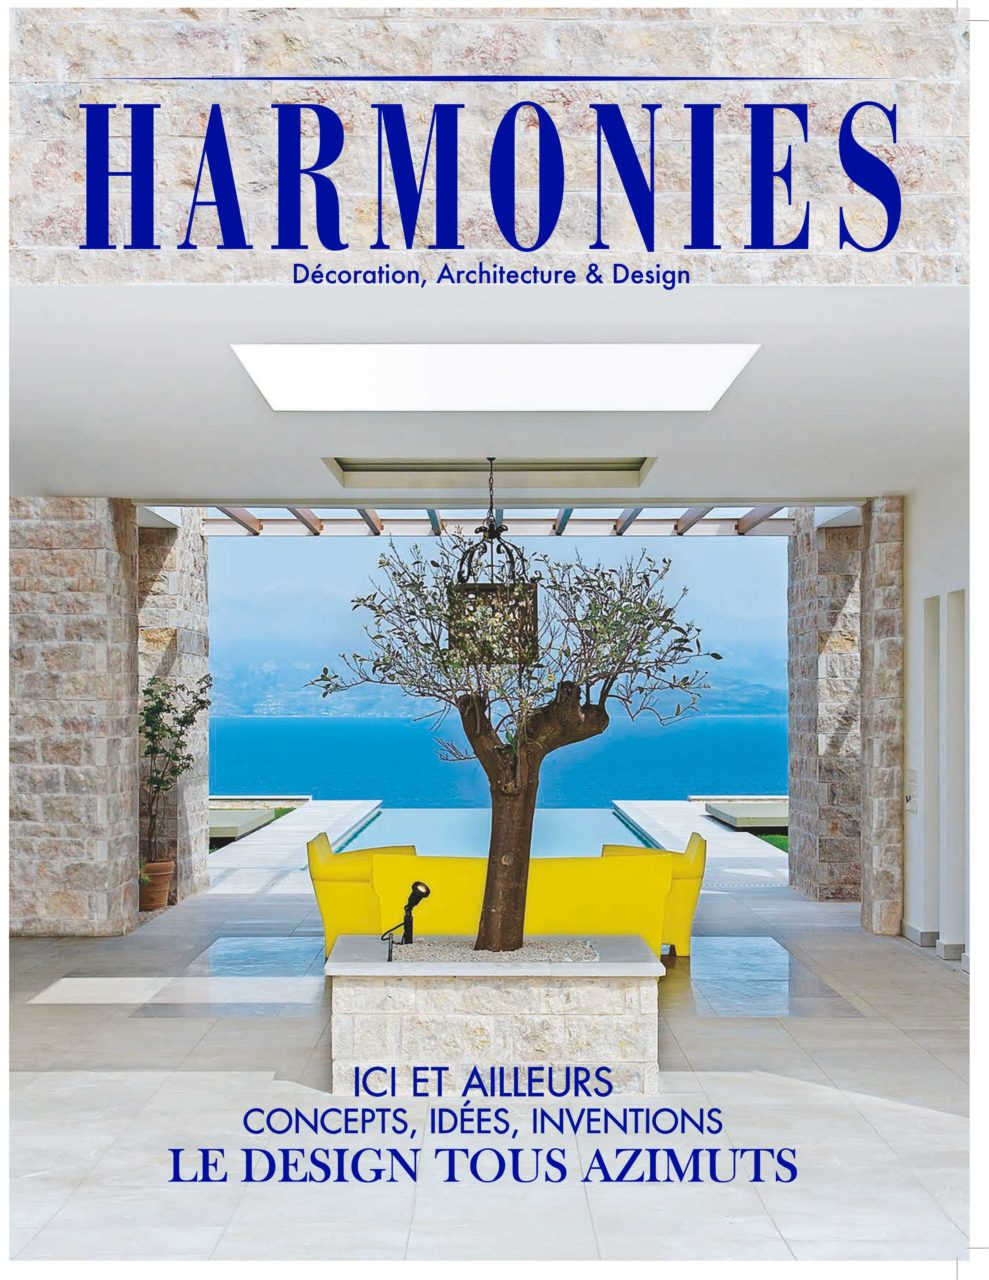 https://www.saota.com/wp-content/uploads/2018/01/Cover-7_September-2017.jpg